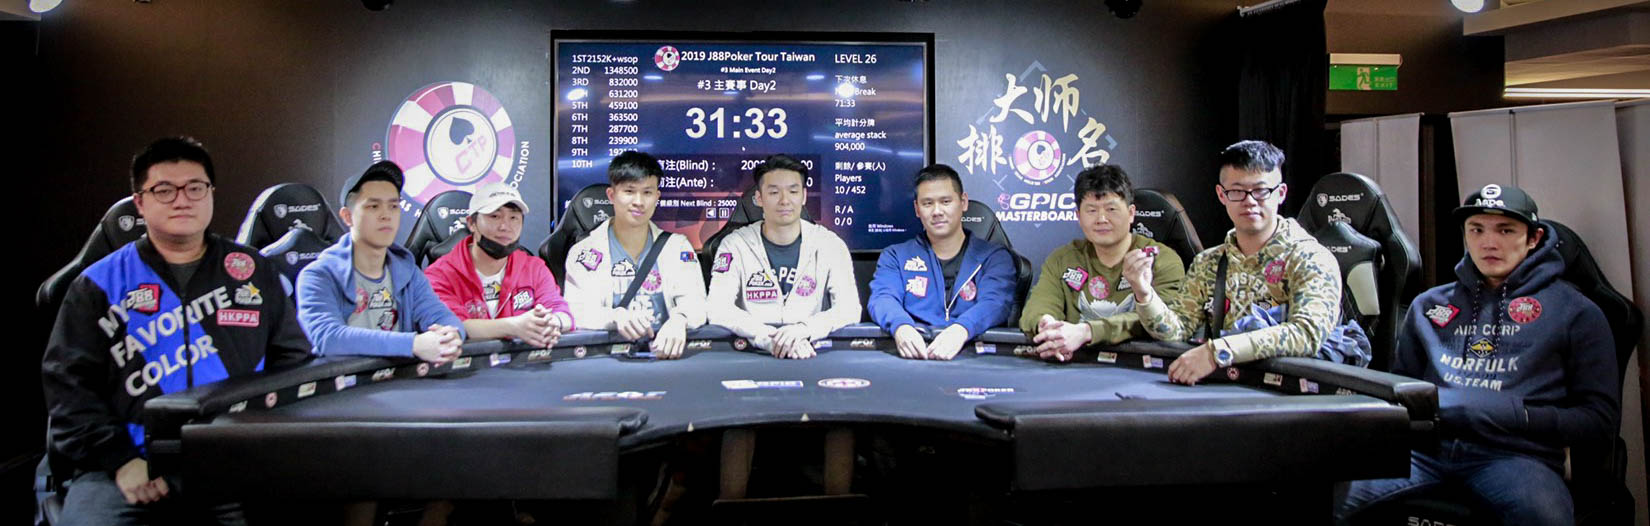 Meet the Final 9 of the J88Poker Tour Main Event